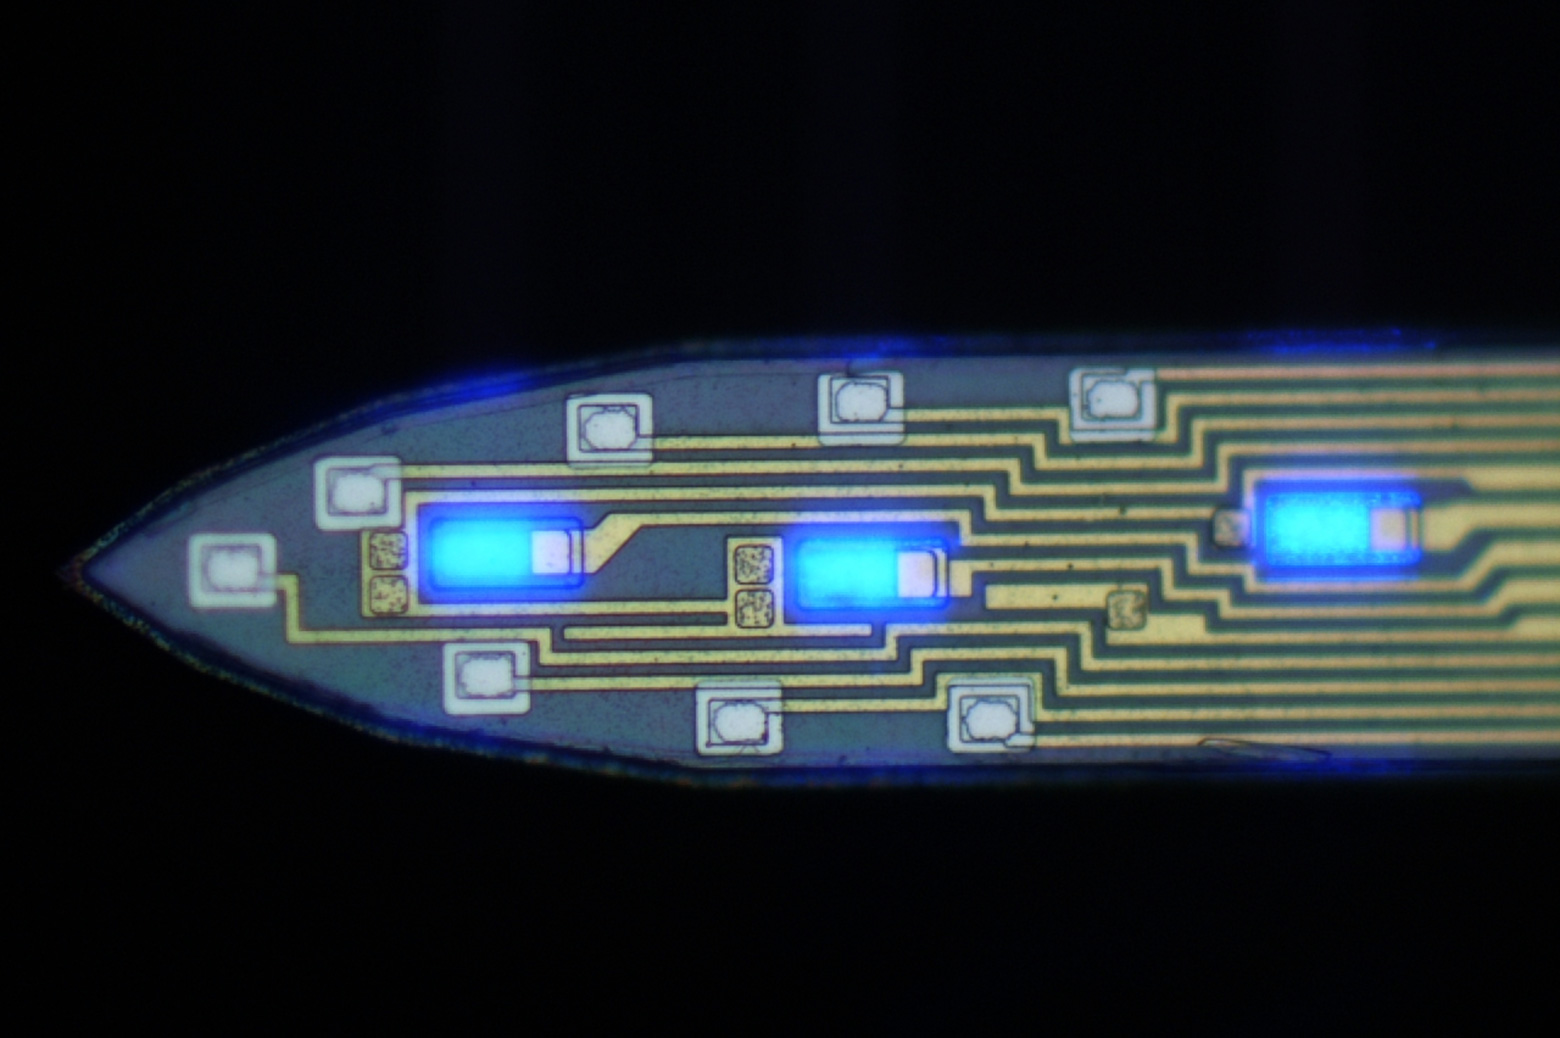 microcircuitry with blue lights and electrodes